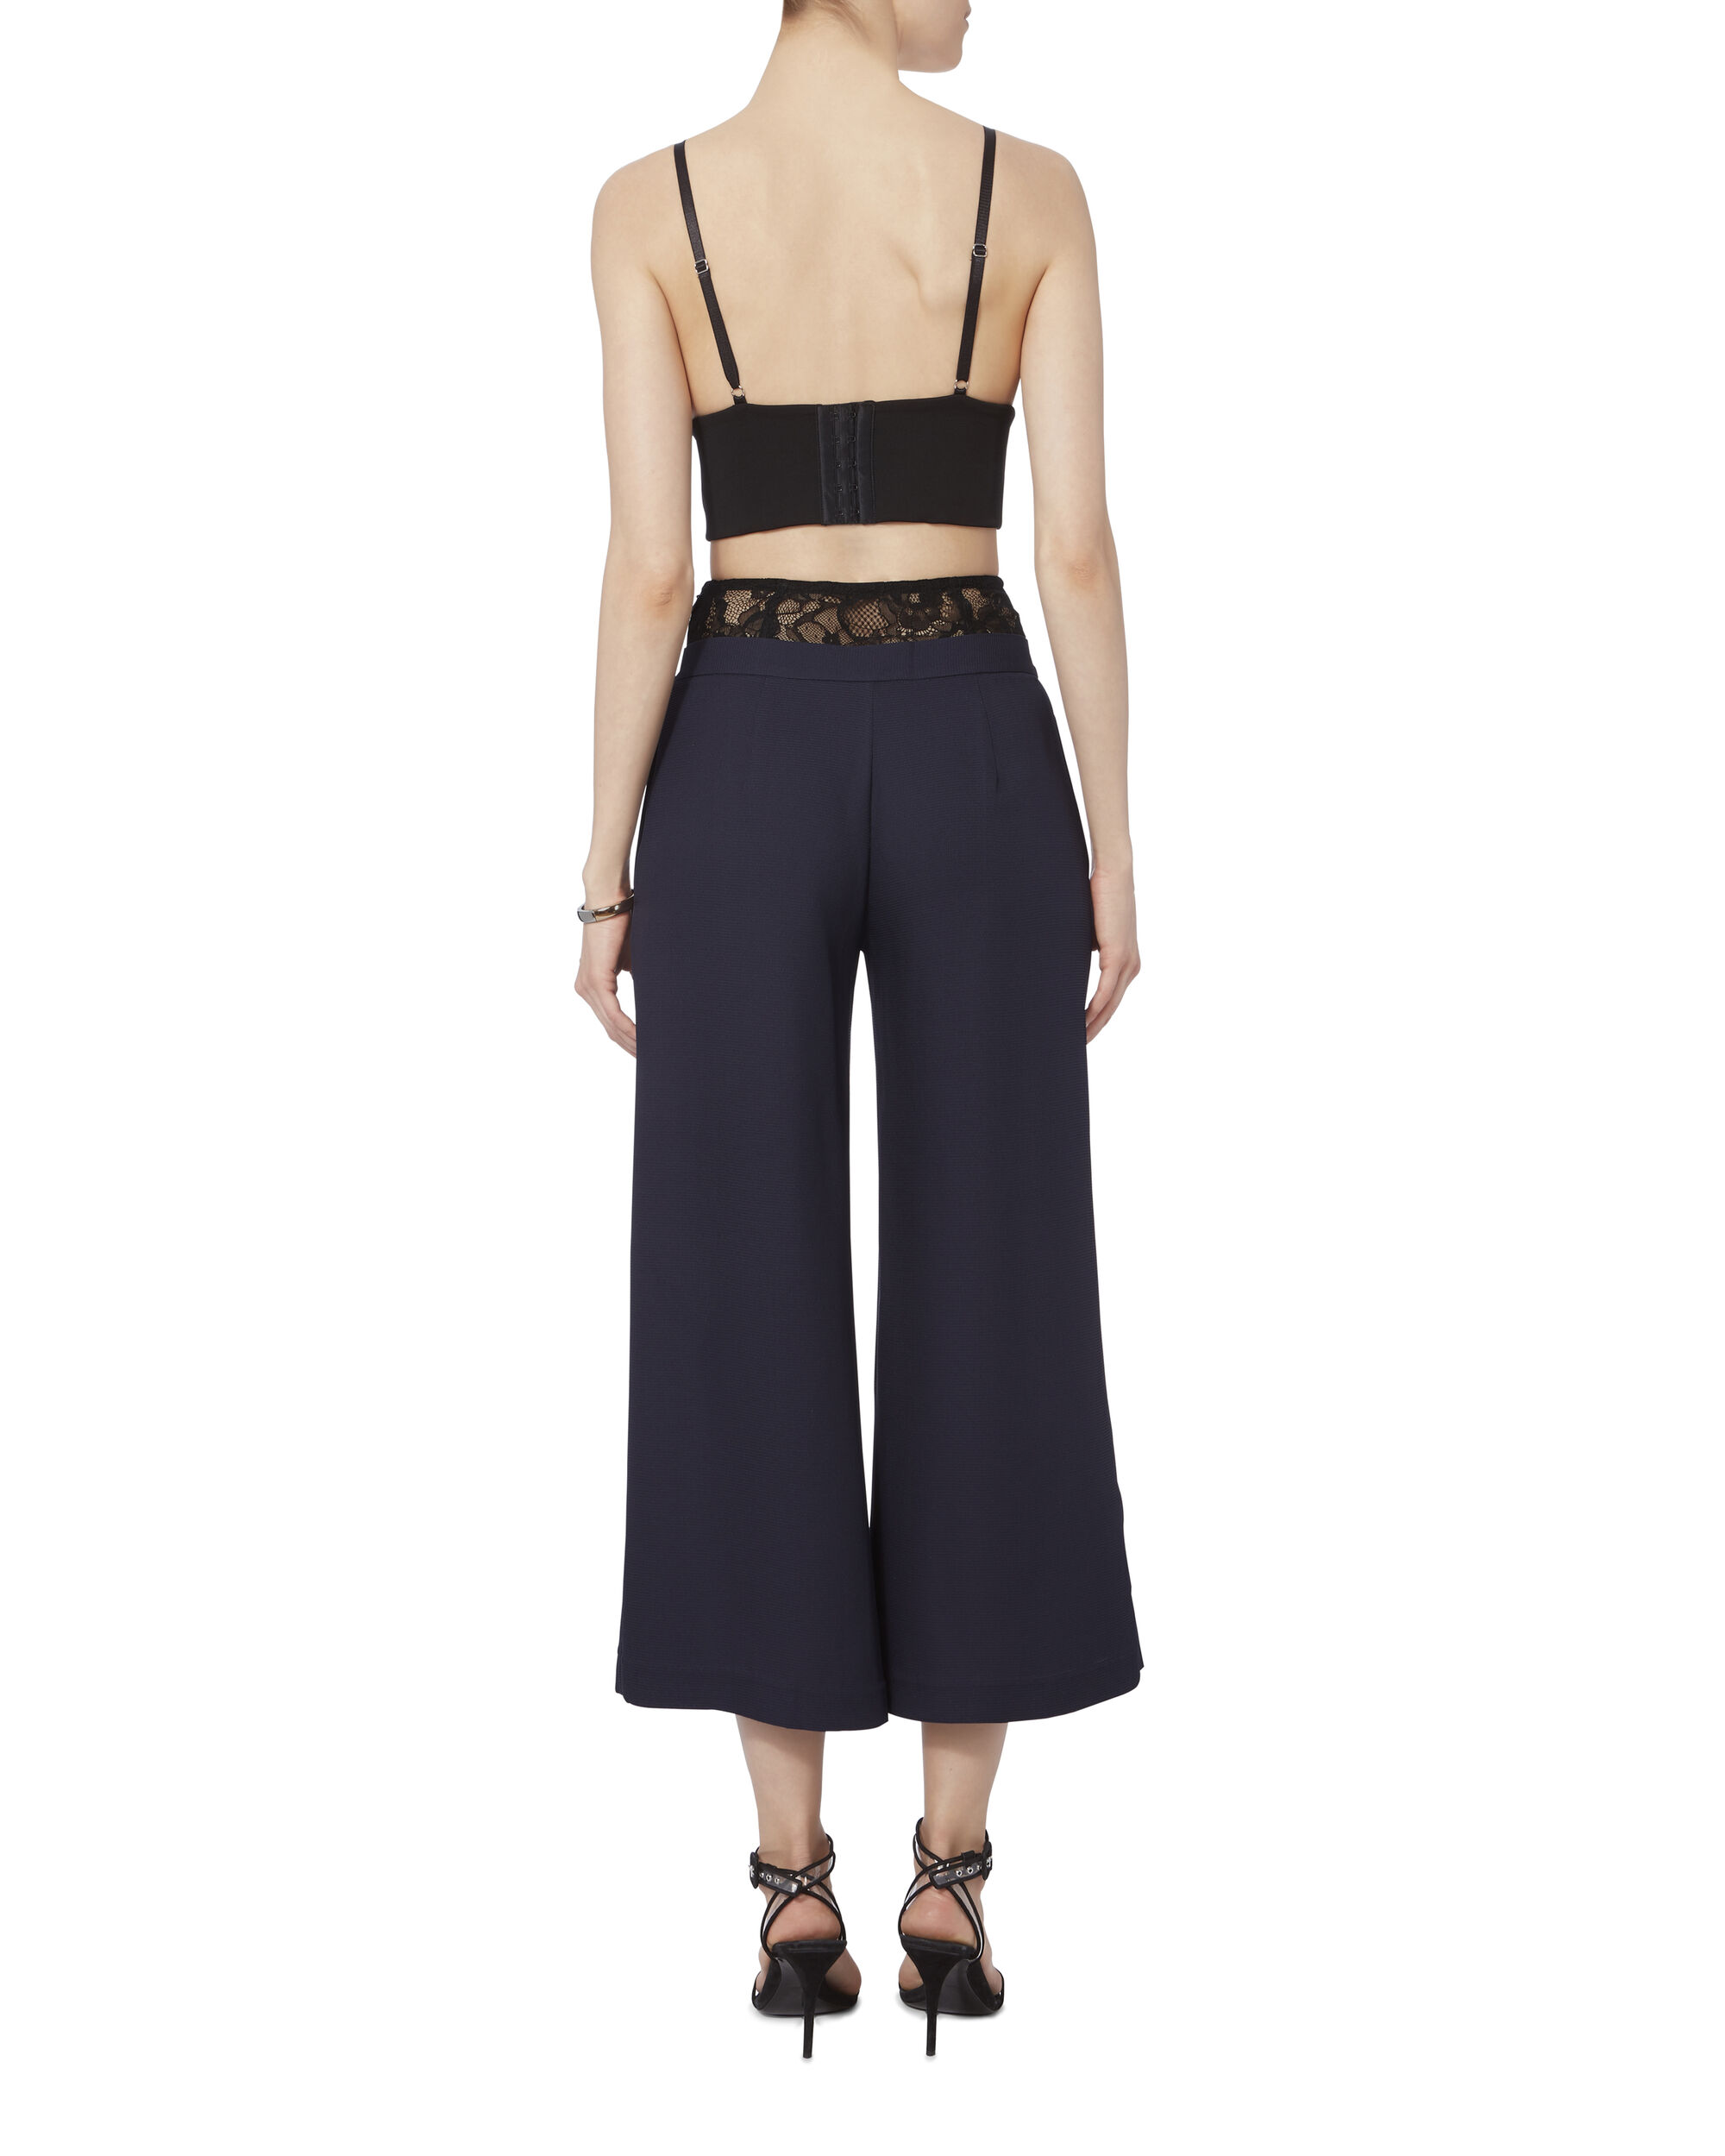 Lace Trim Slit Front Pants, NAVY, hi-res